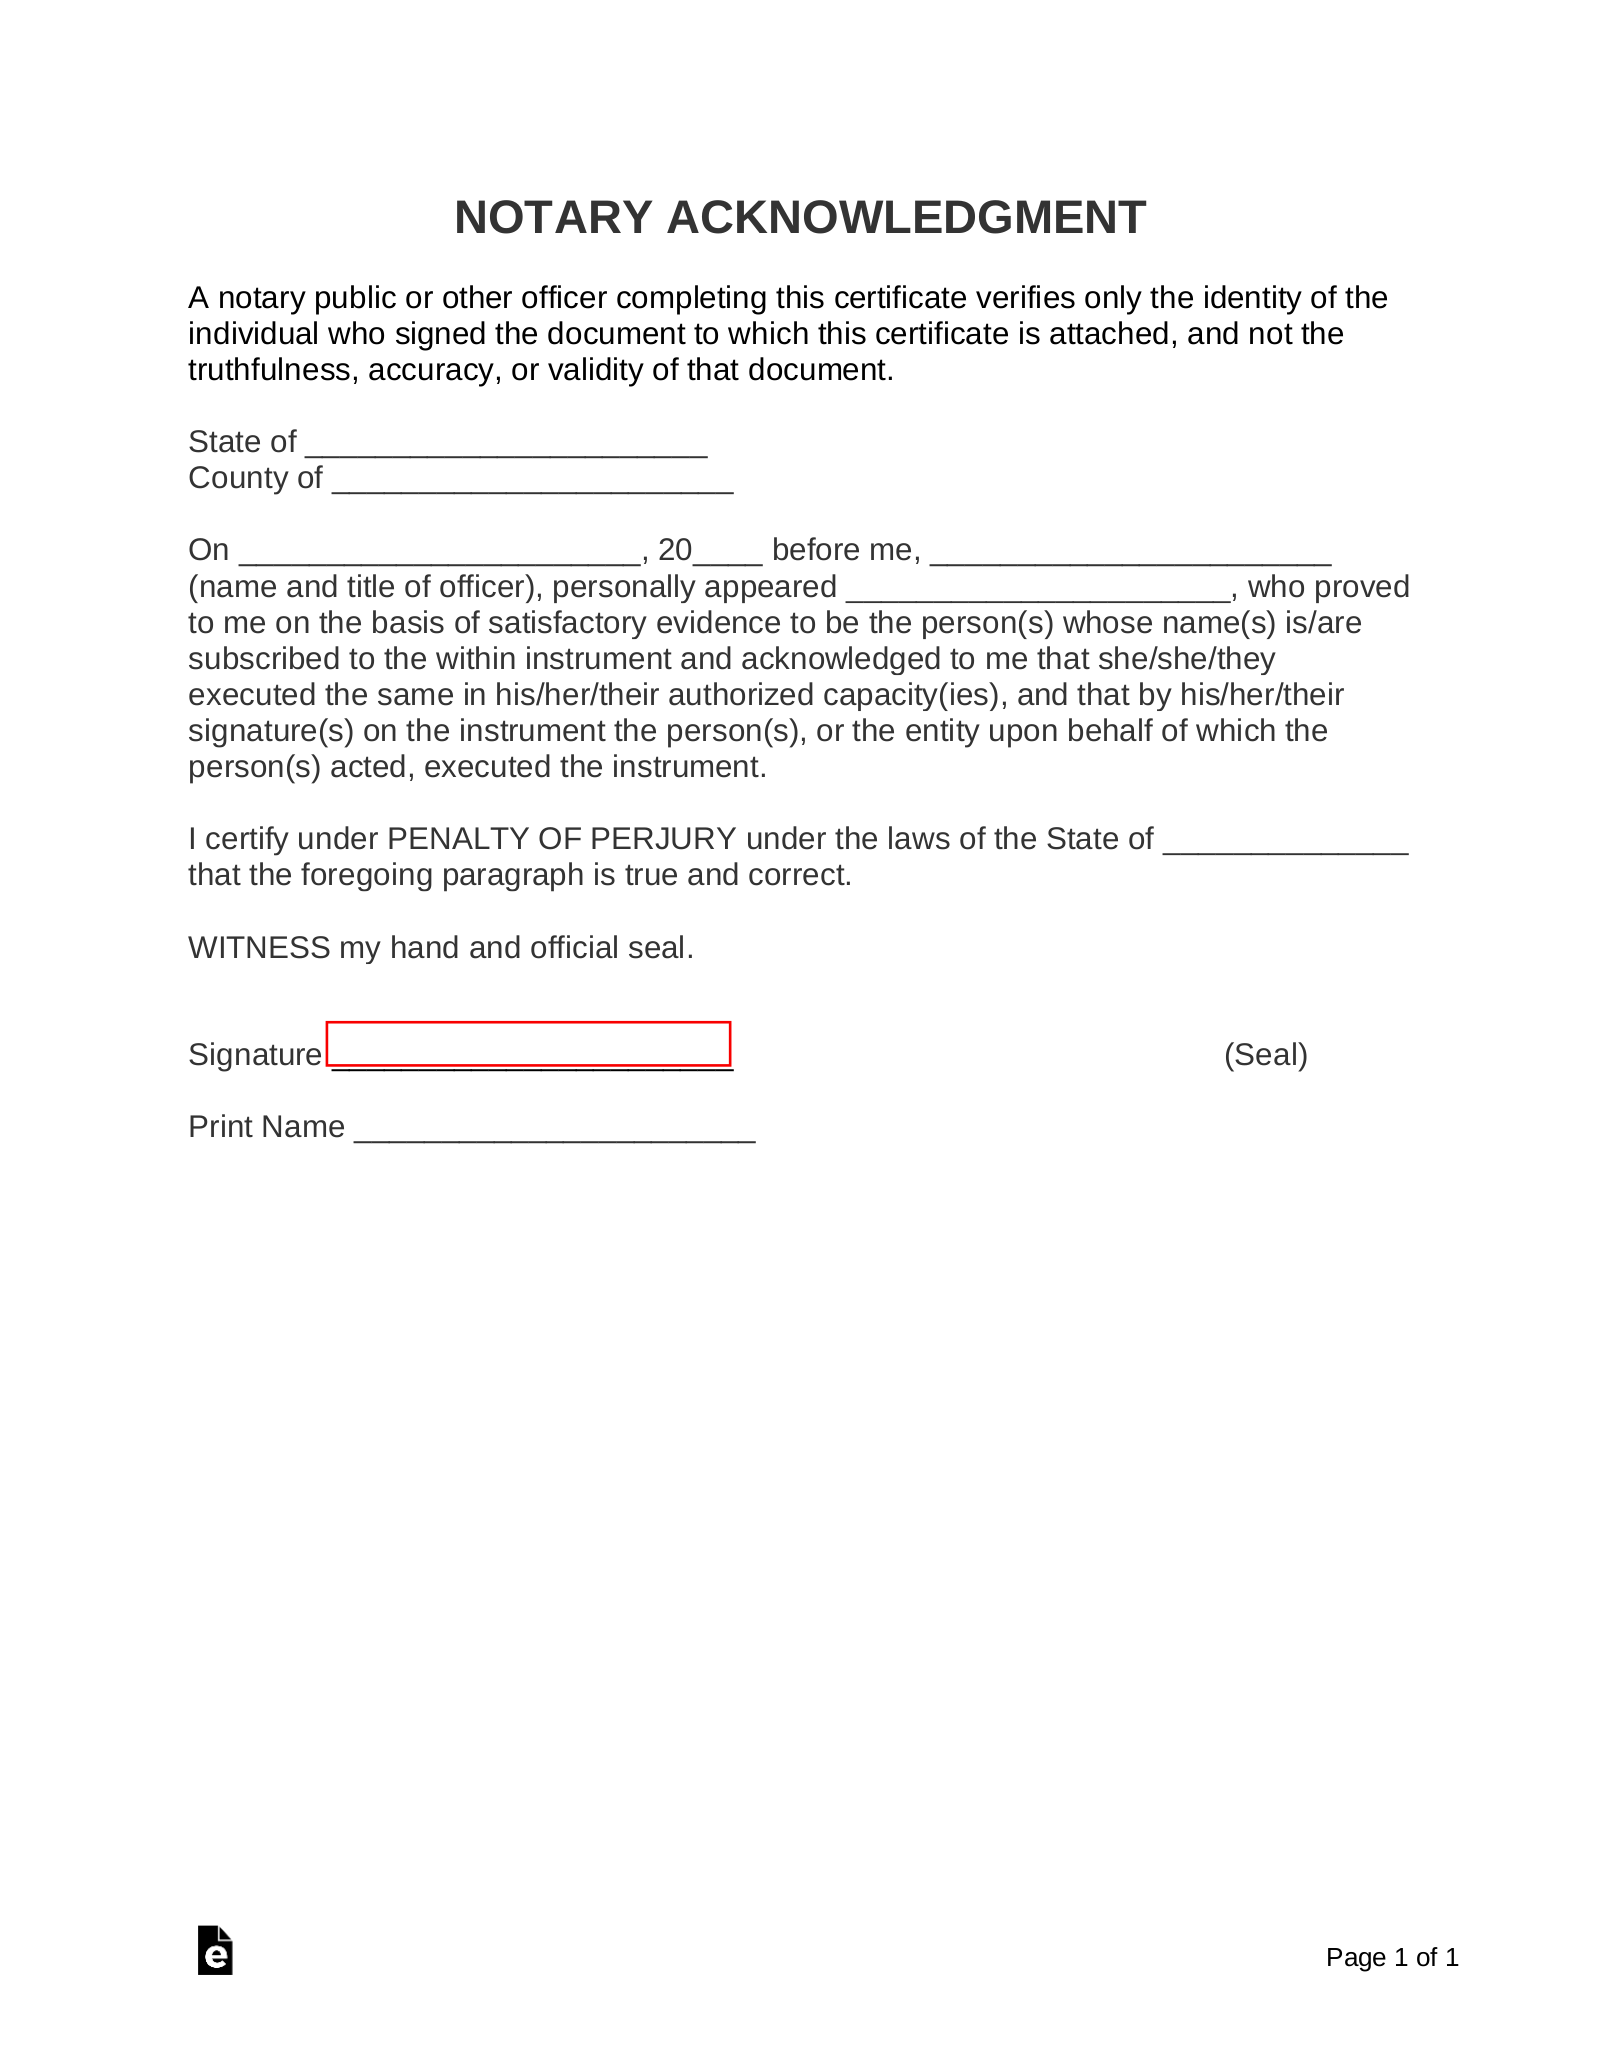 free notary form template  sample notary form - Zelay.wpart.co